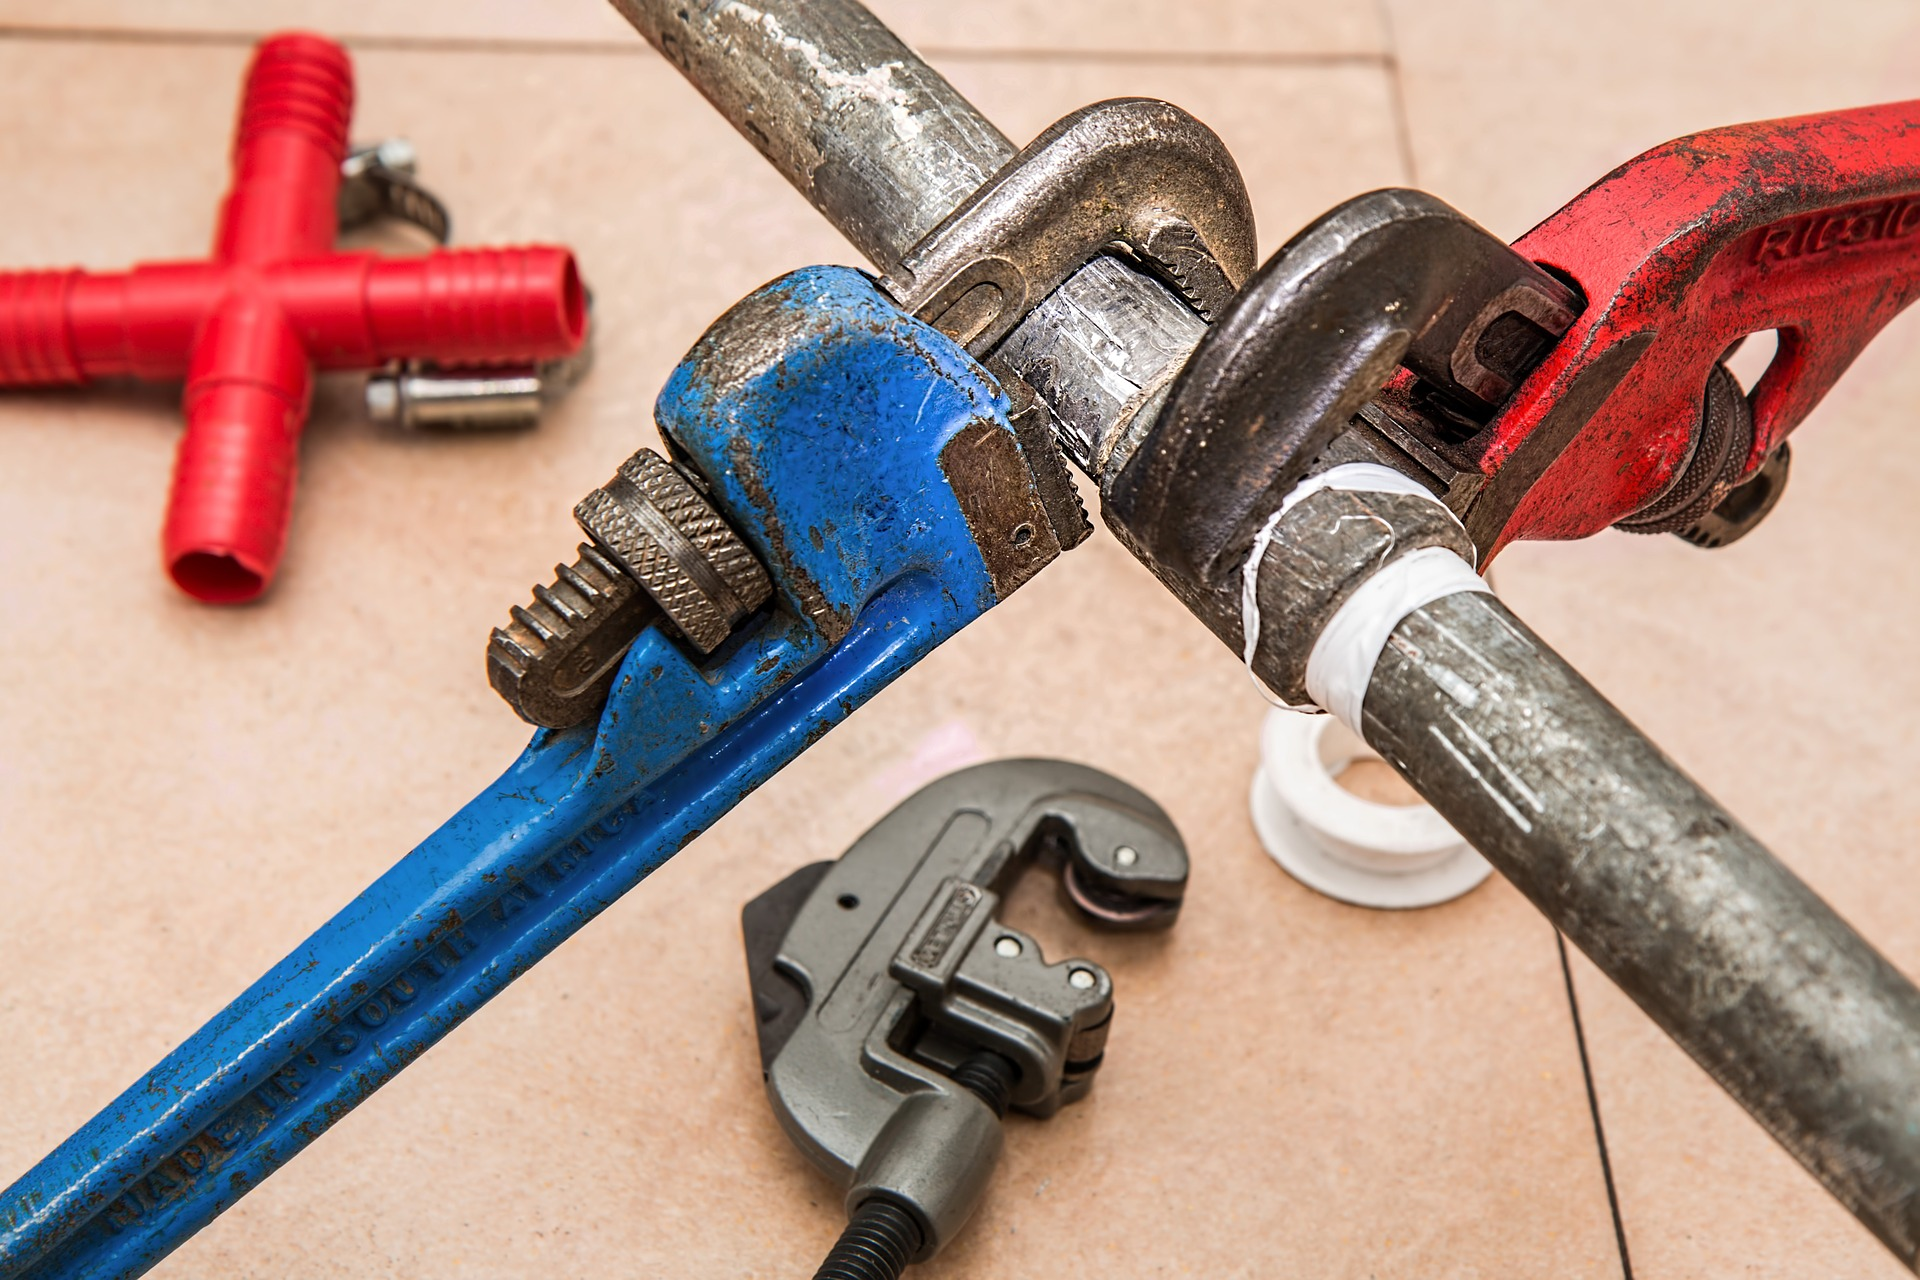 Providing the Best Plumbing and Water Damage Repairs for Over 25 Years